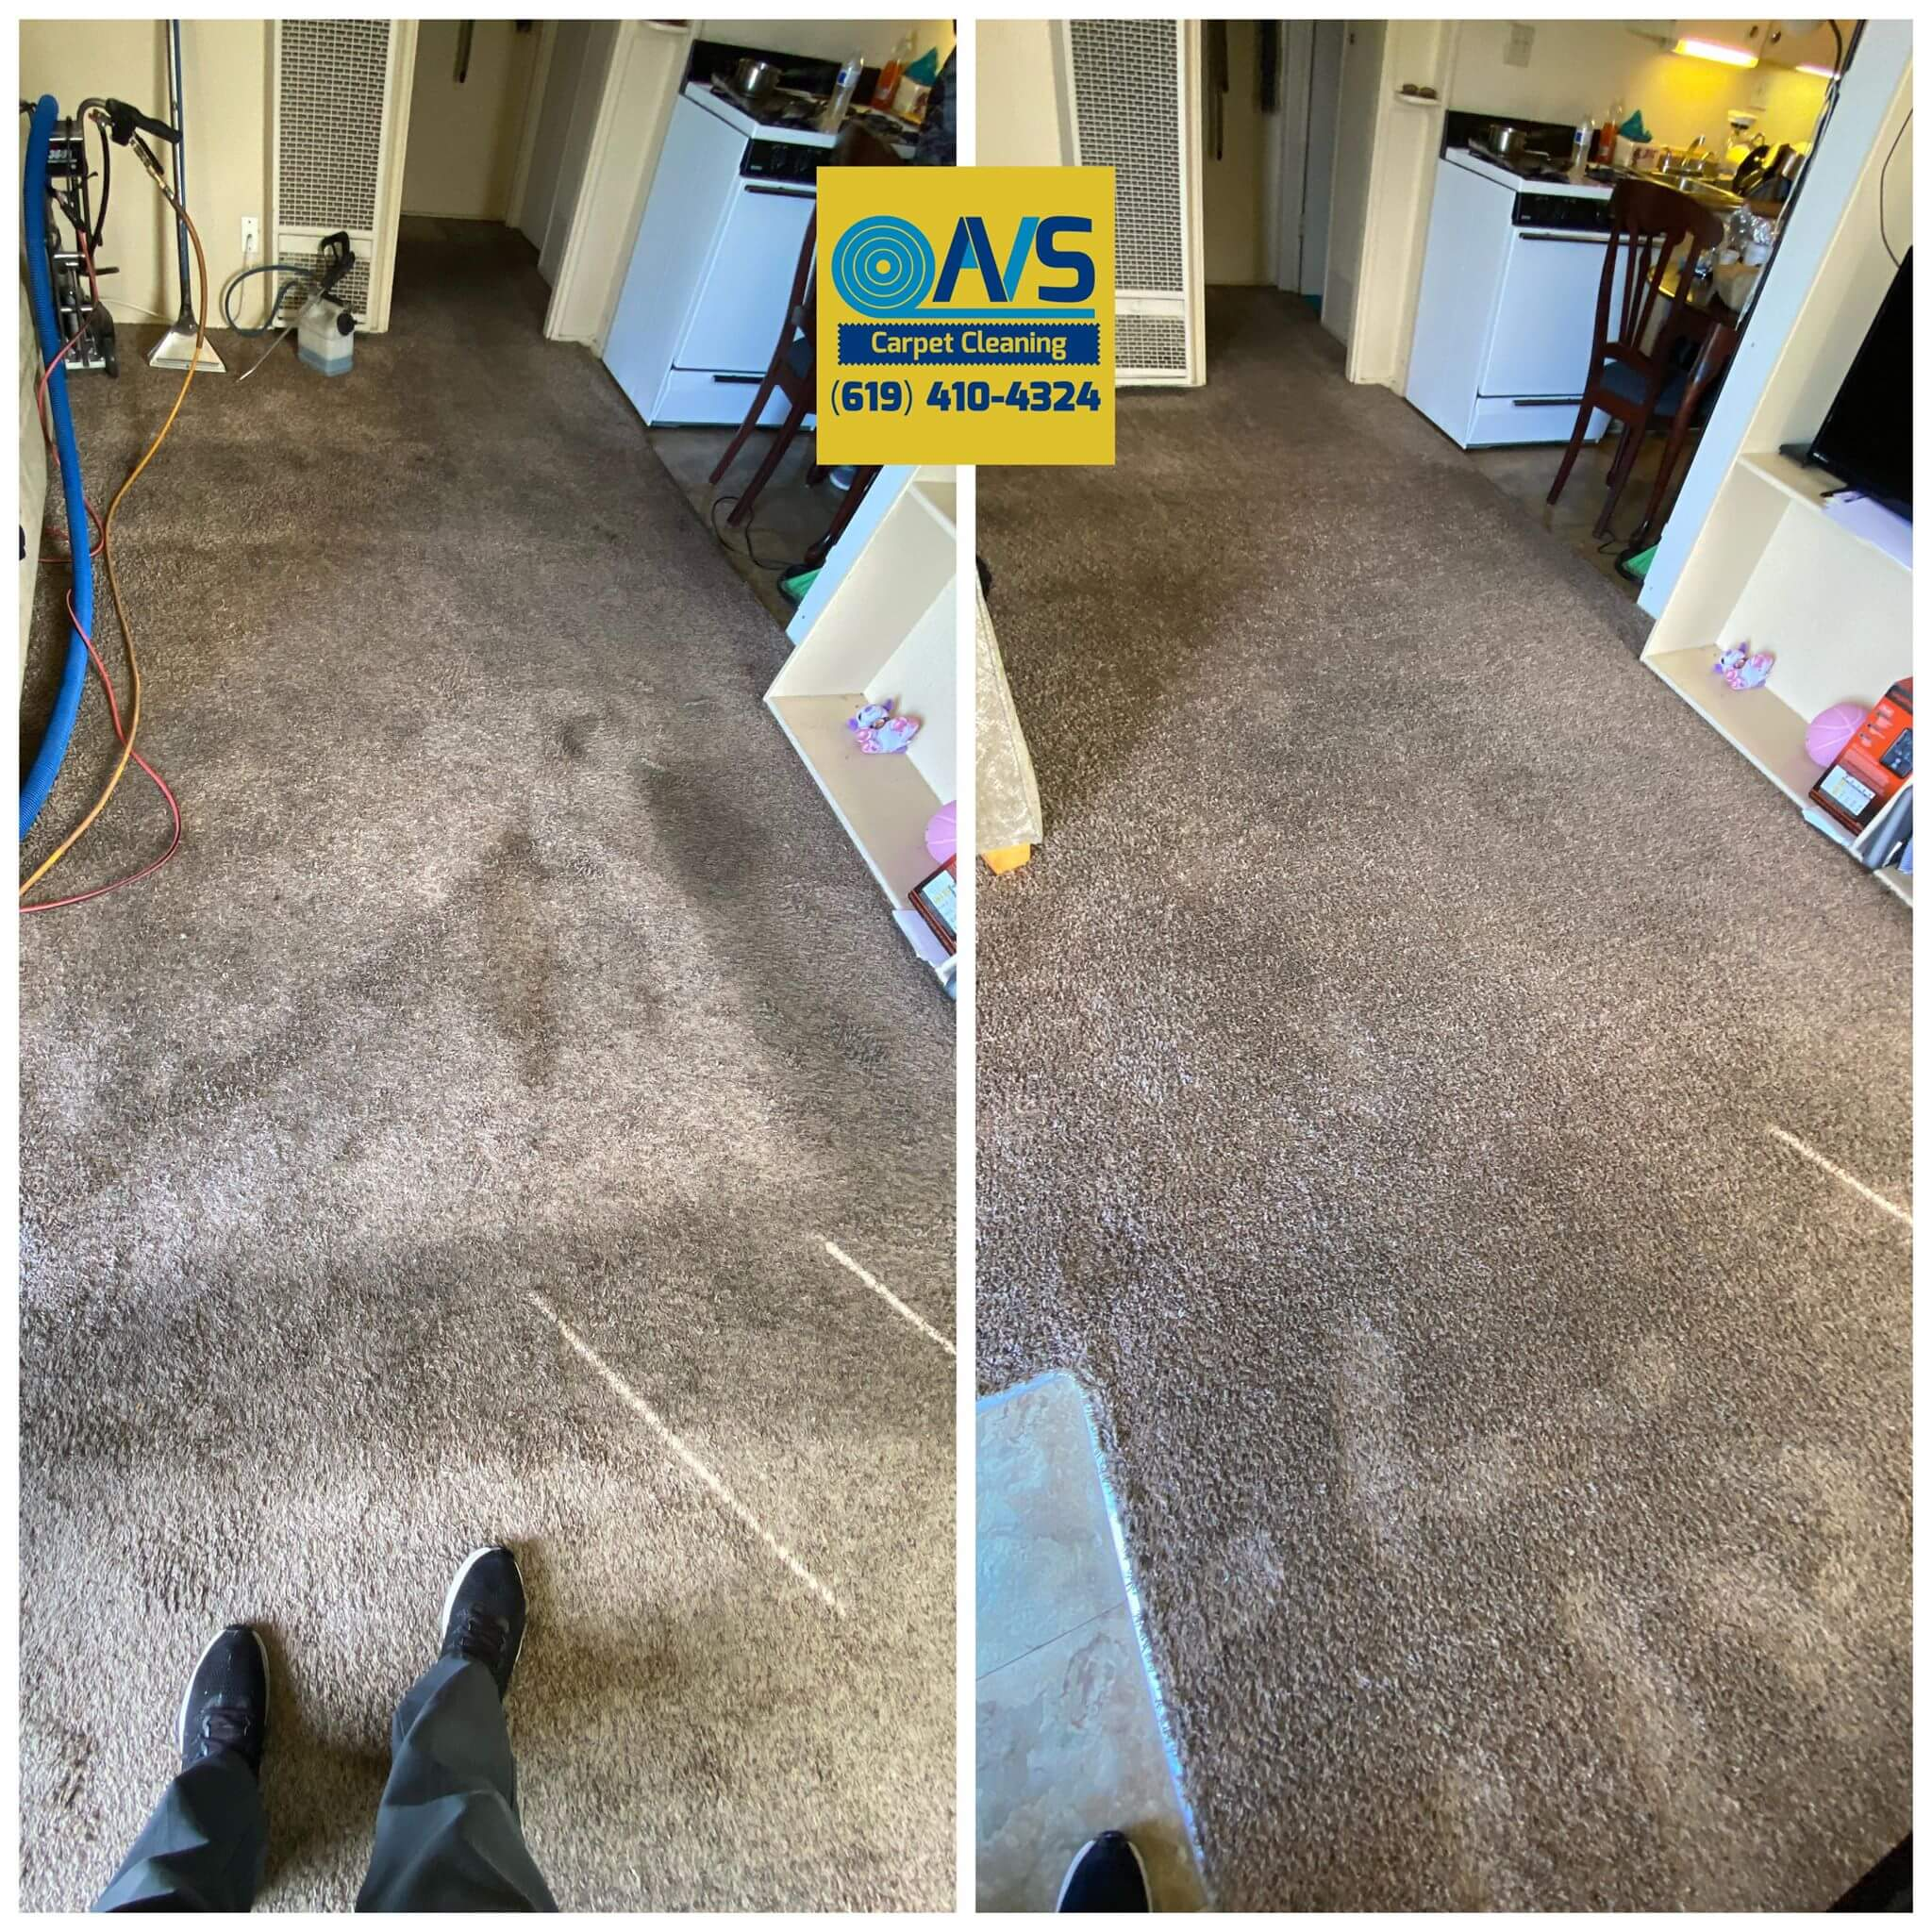 before after cleaning images